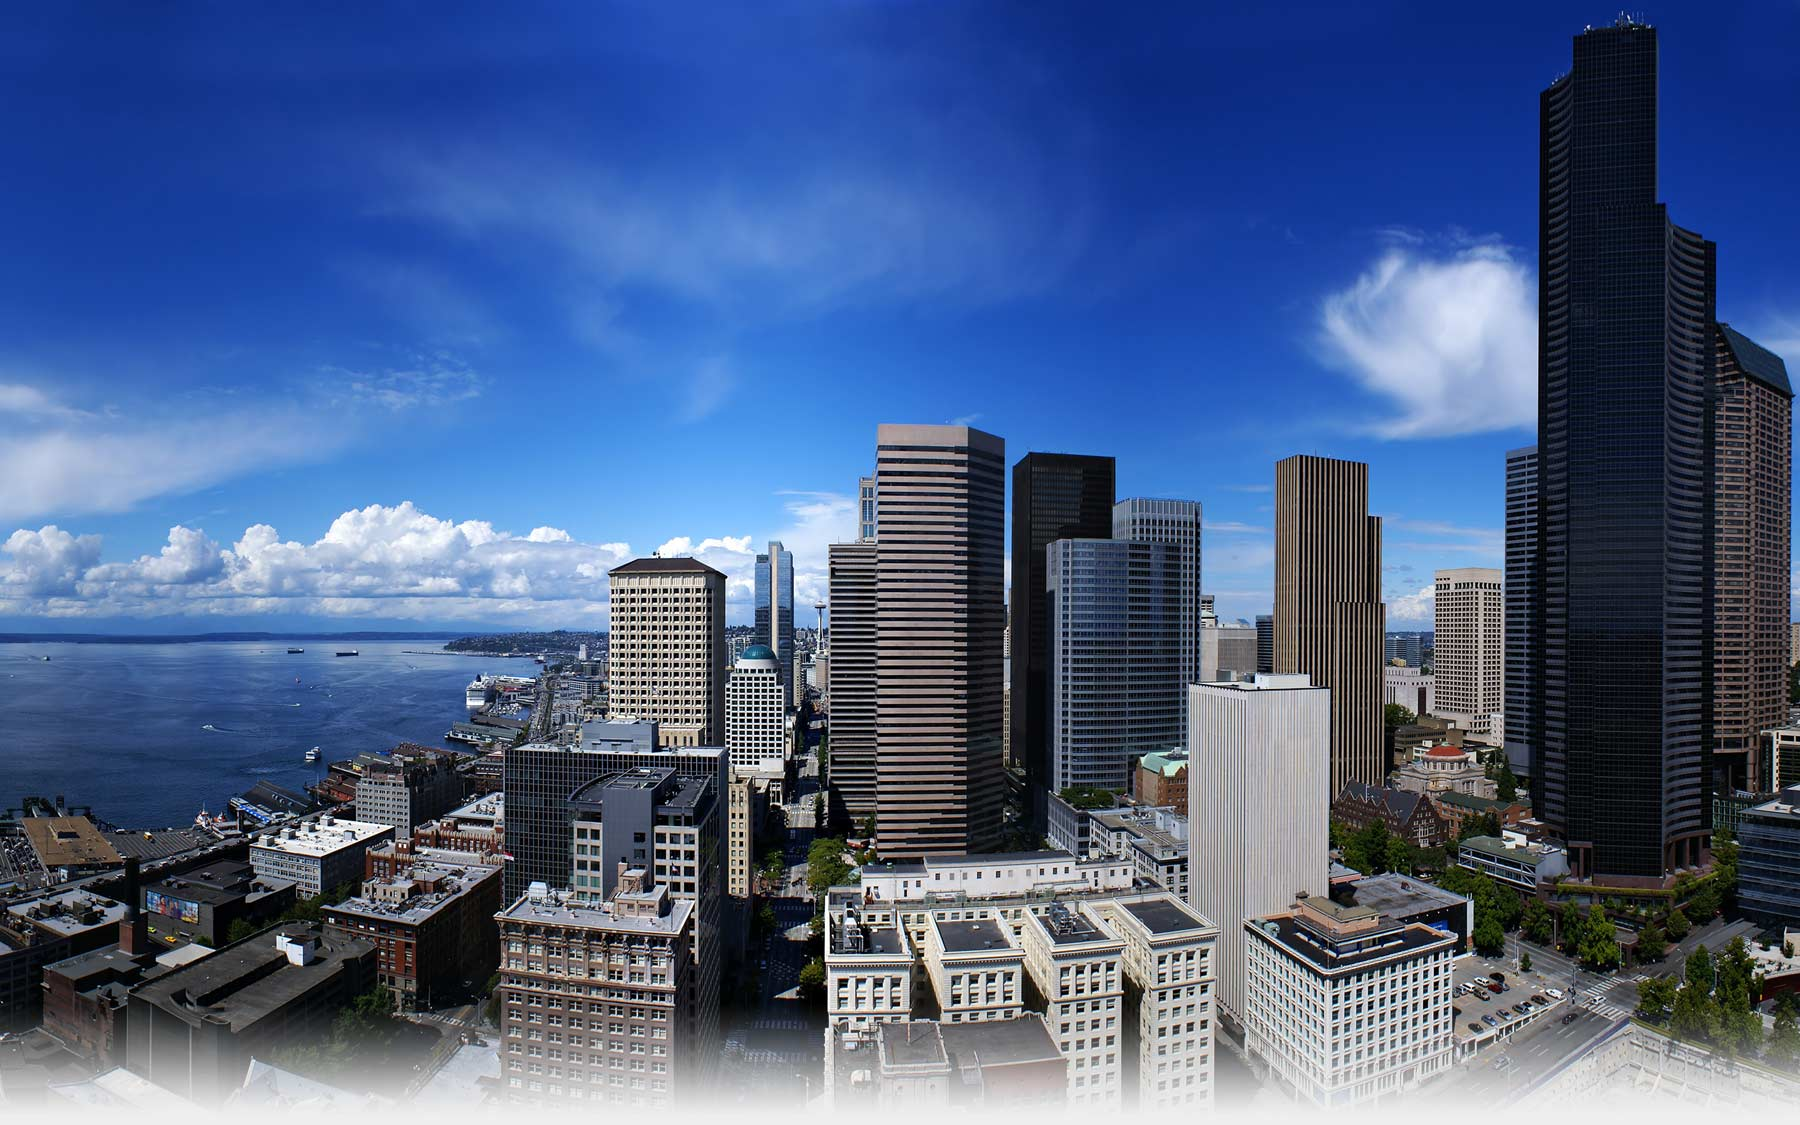 One-point perspective photograph of downtown Seattle, WA on a mostly sunny day